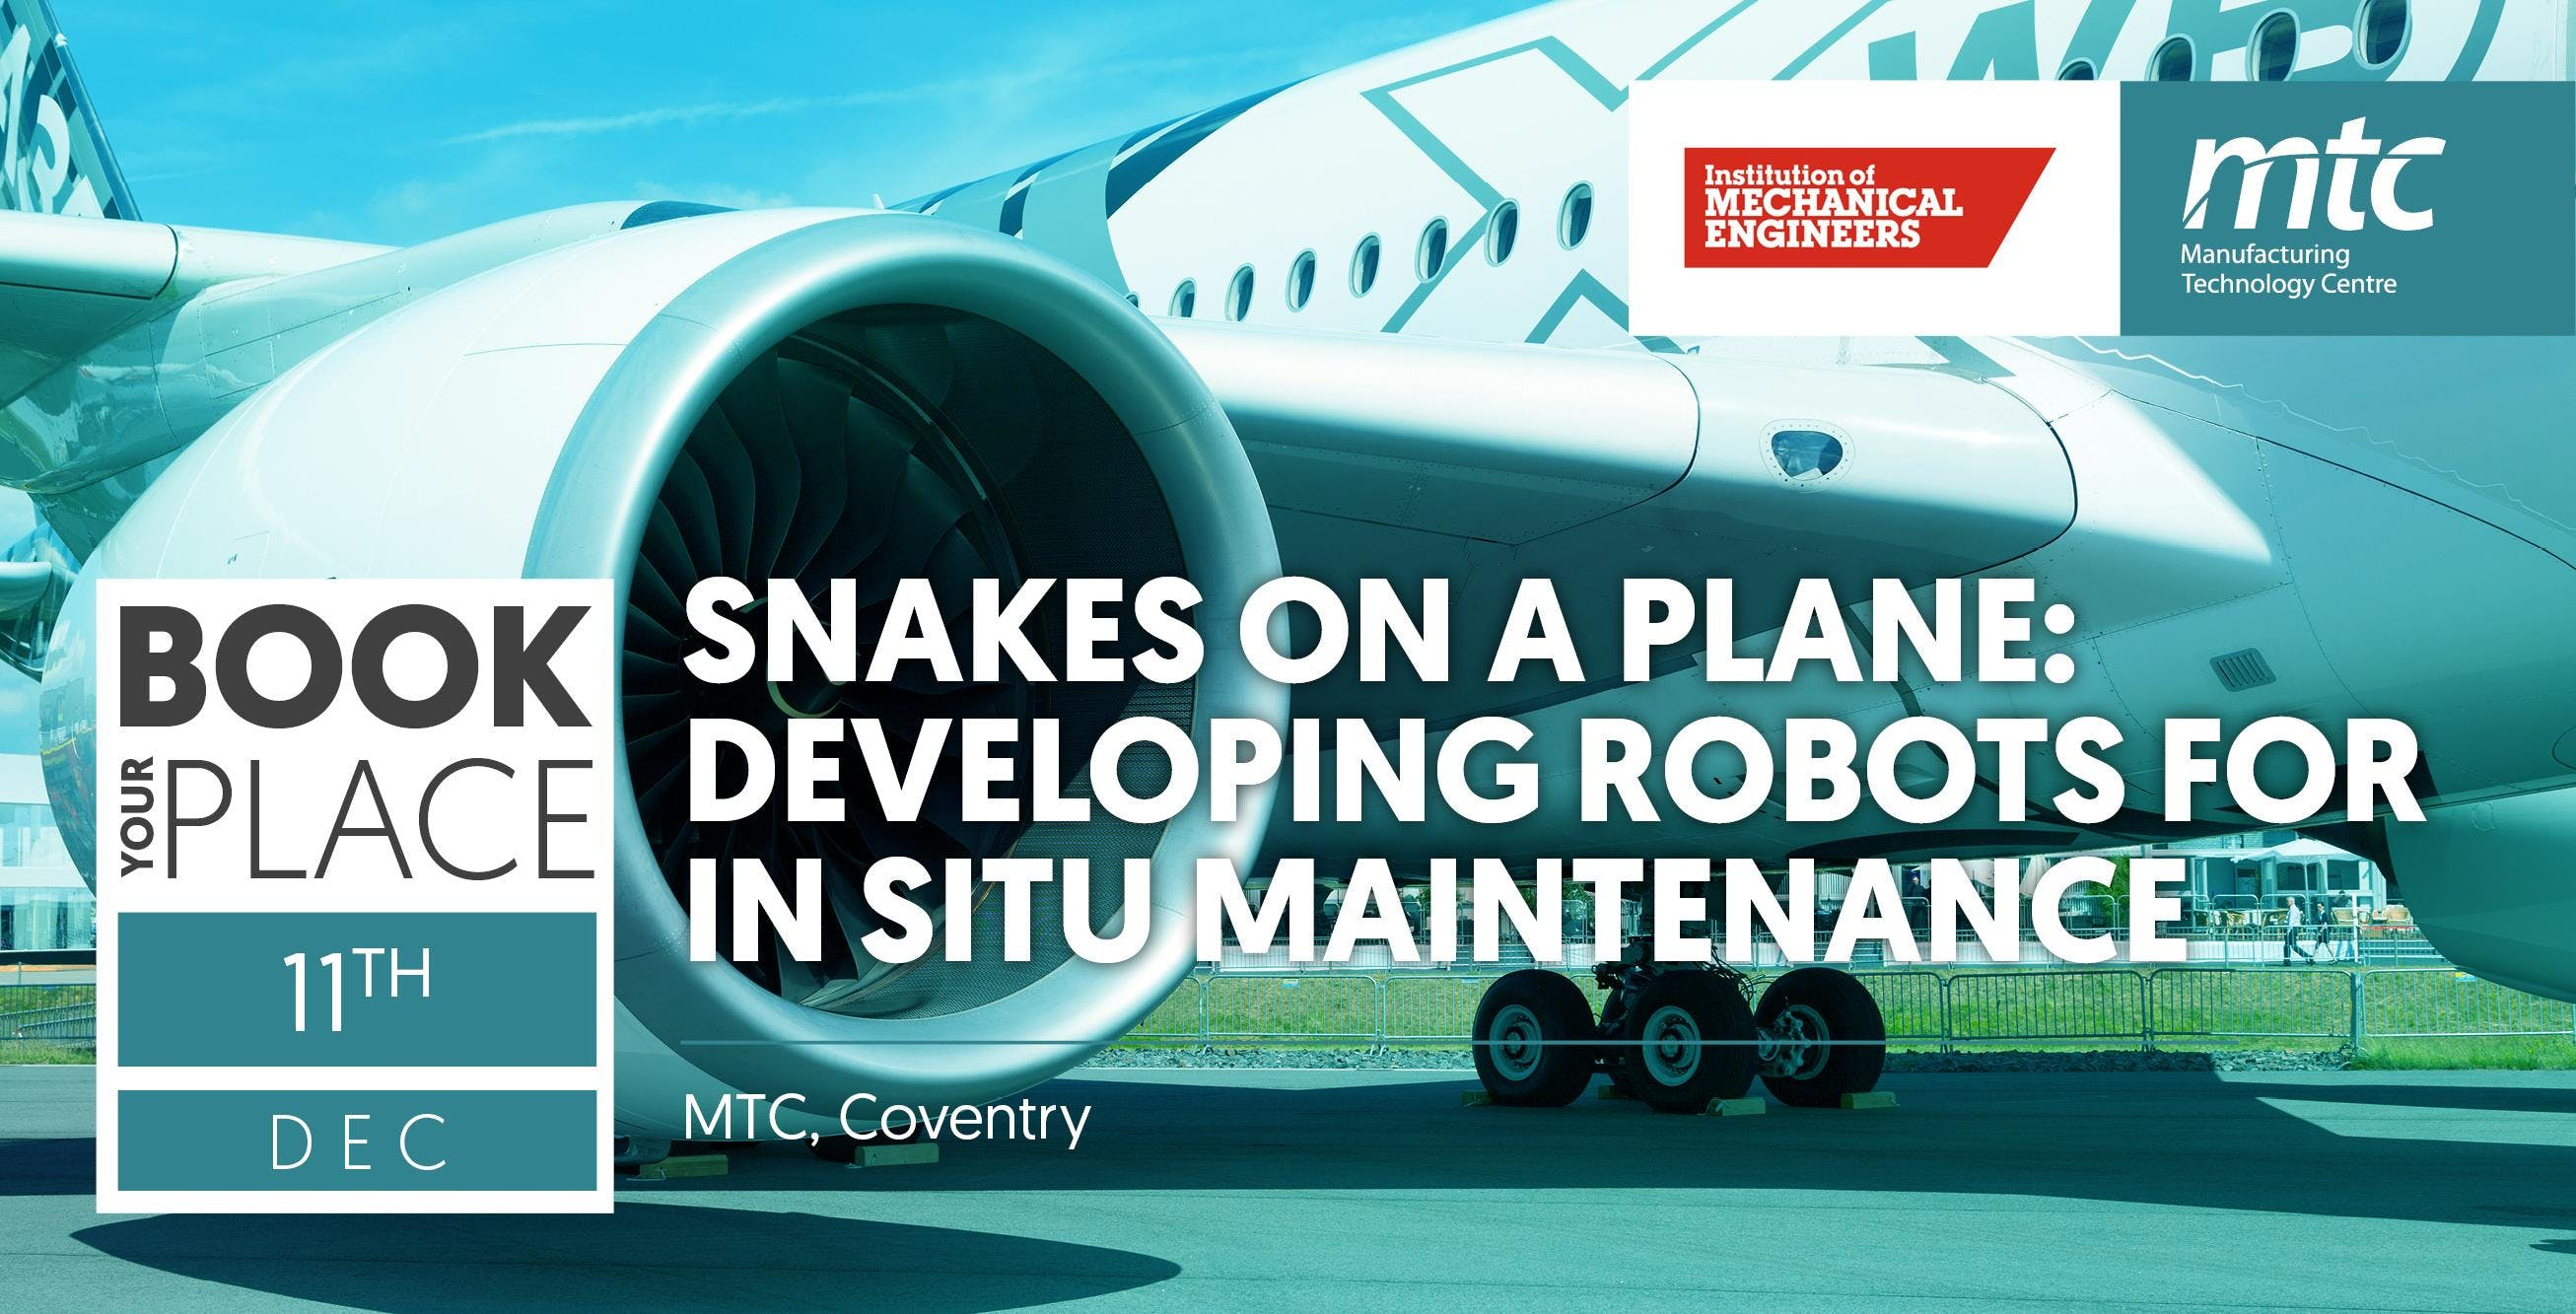 Snakes on a plane: developing robots for in s